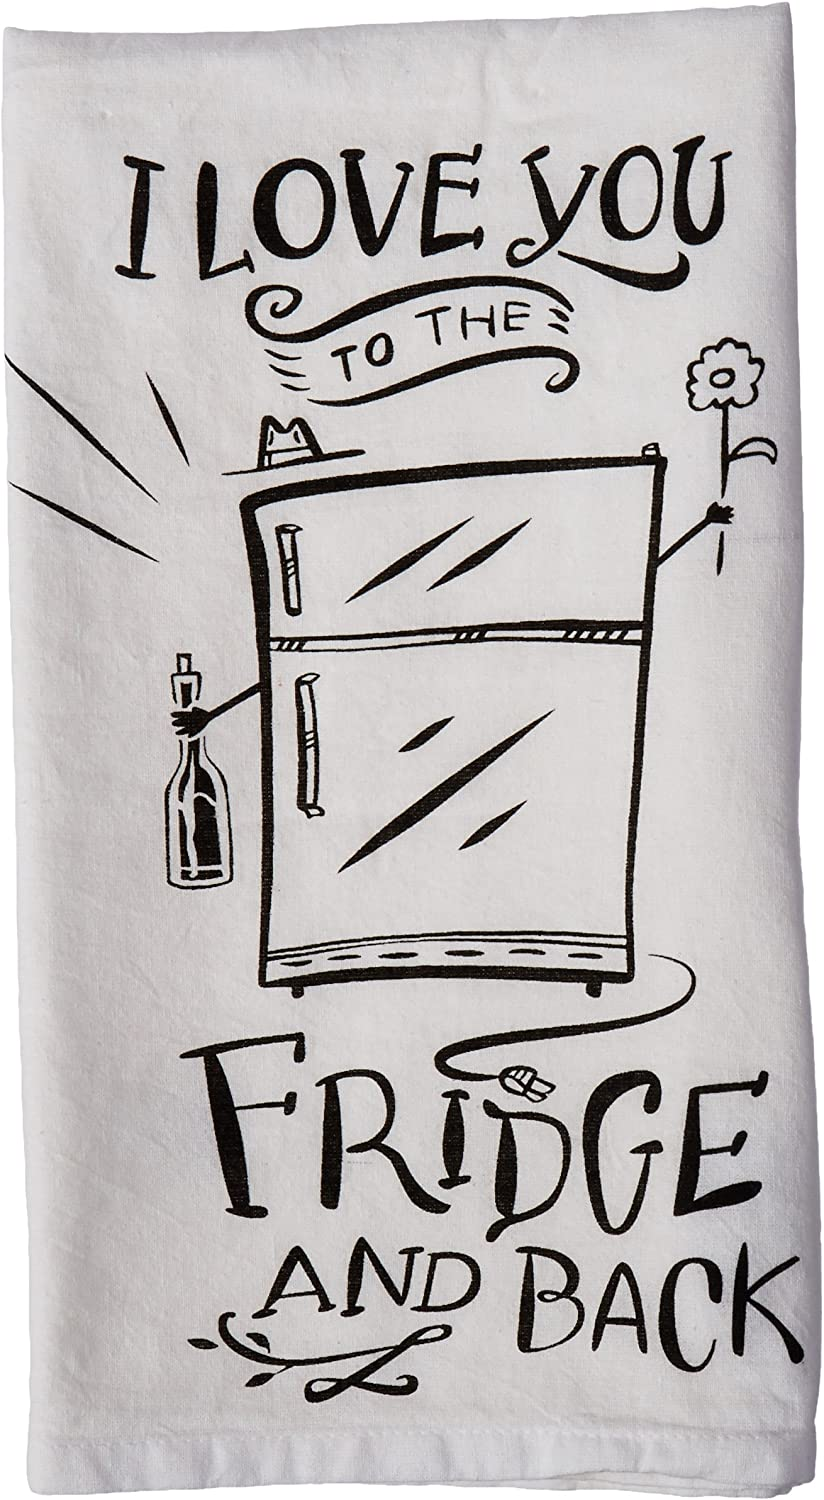 Primitives by Kathy LOL Made You Smile Dish Towel, 28 by 28-Inch, to The Fridge and Back